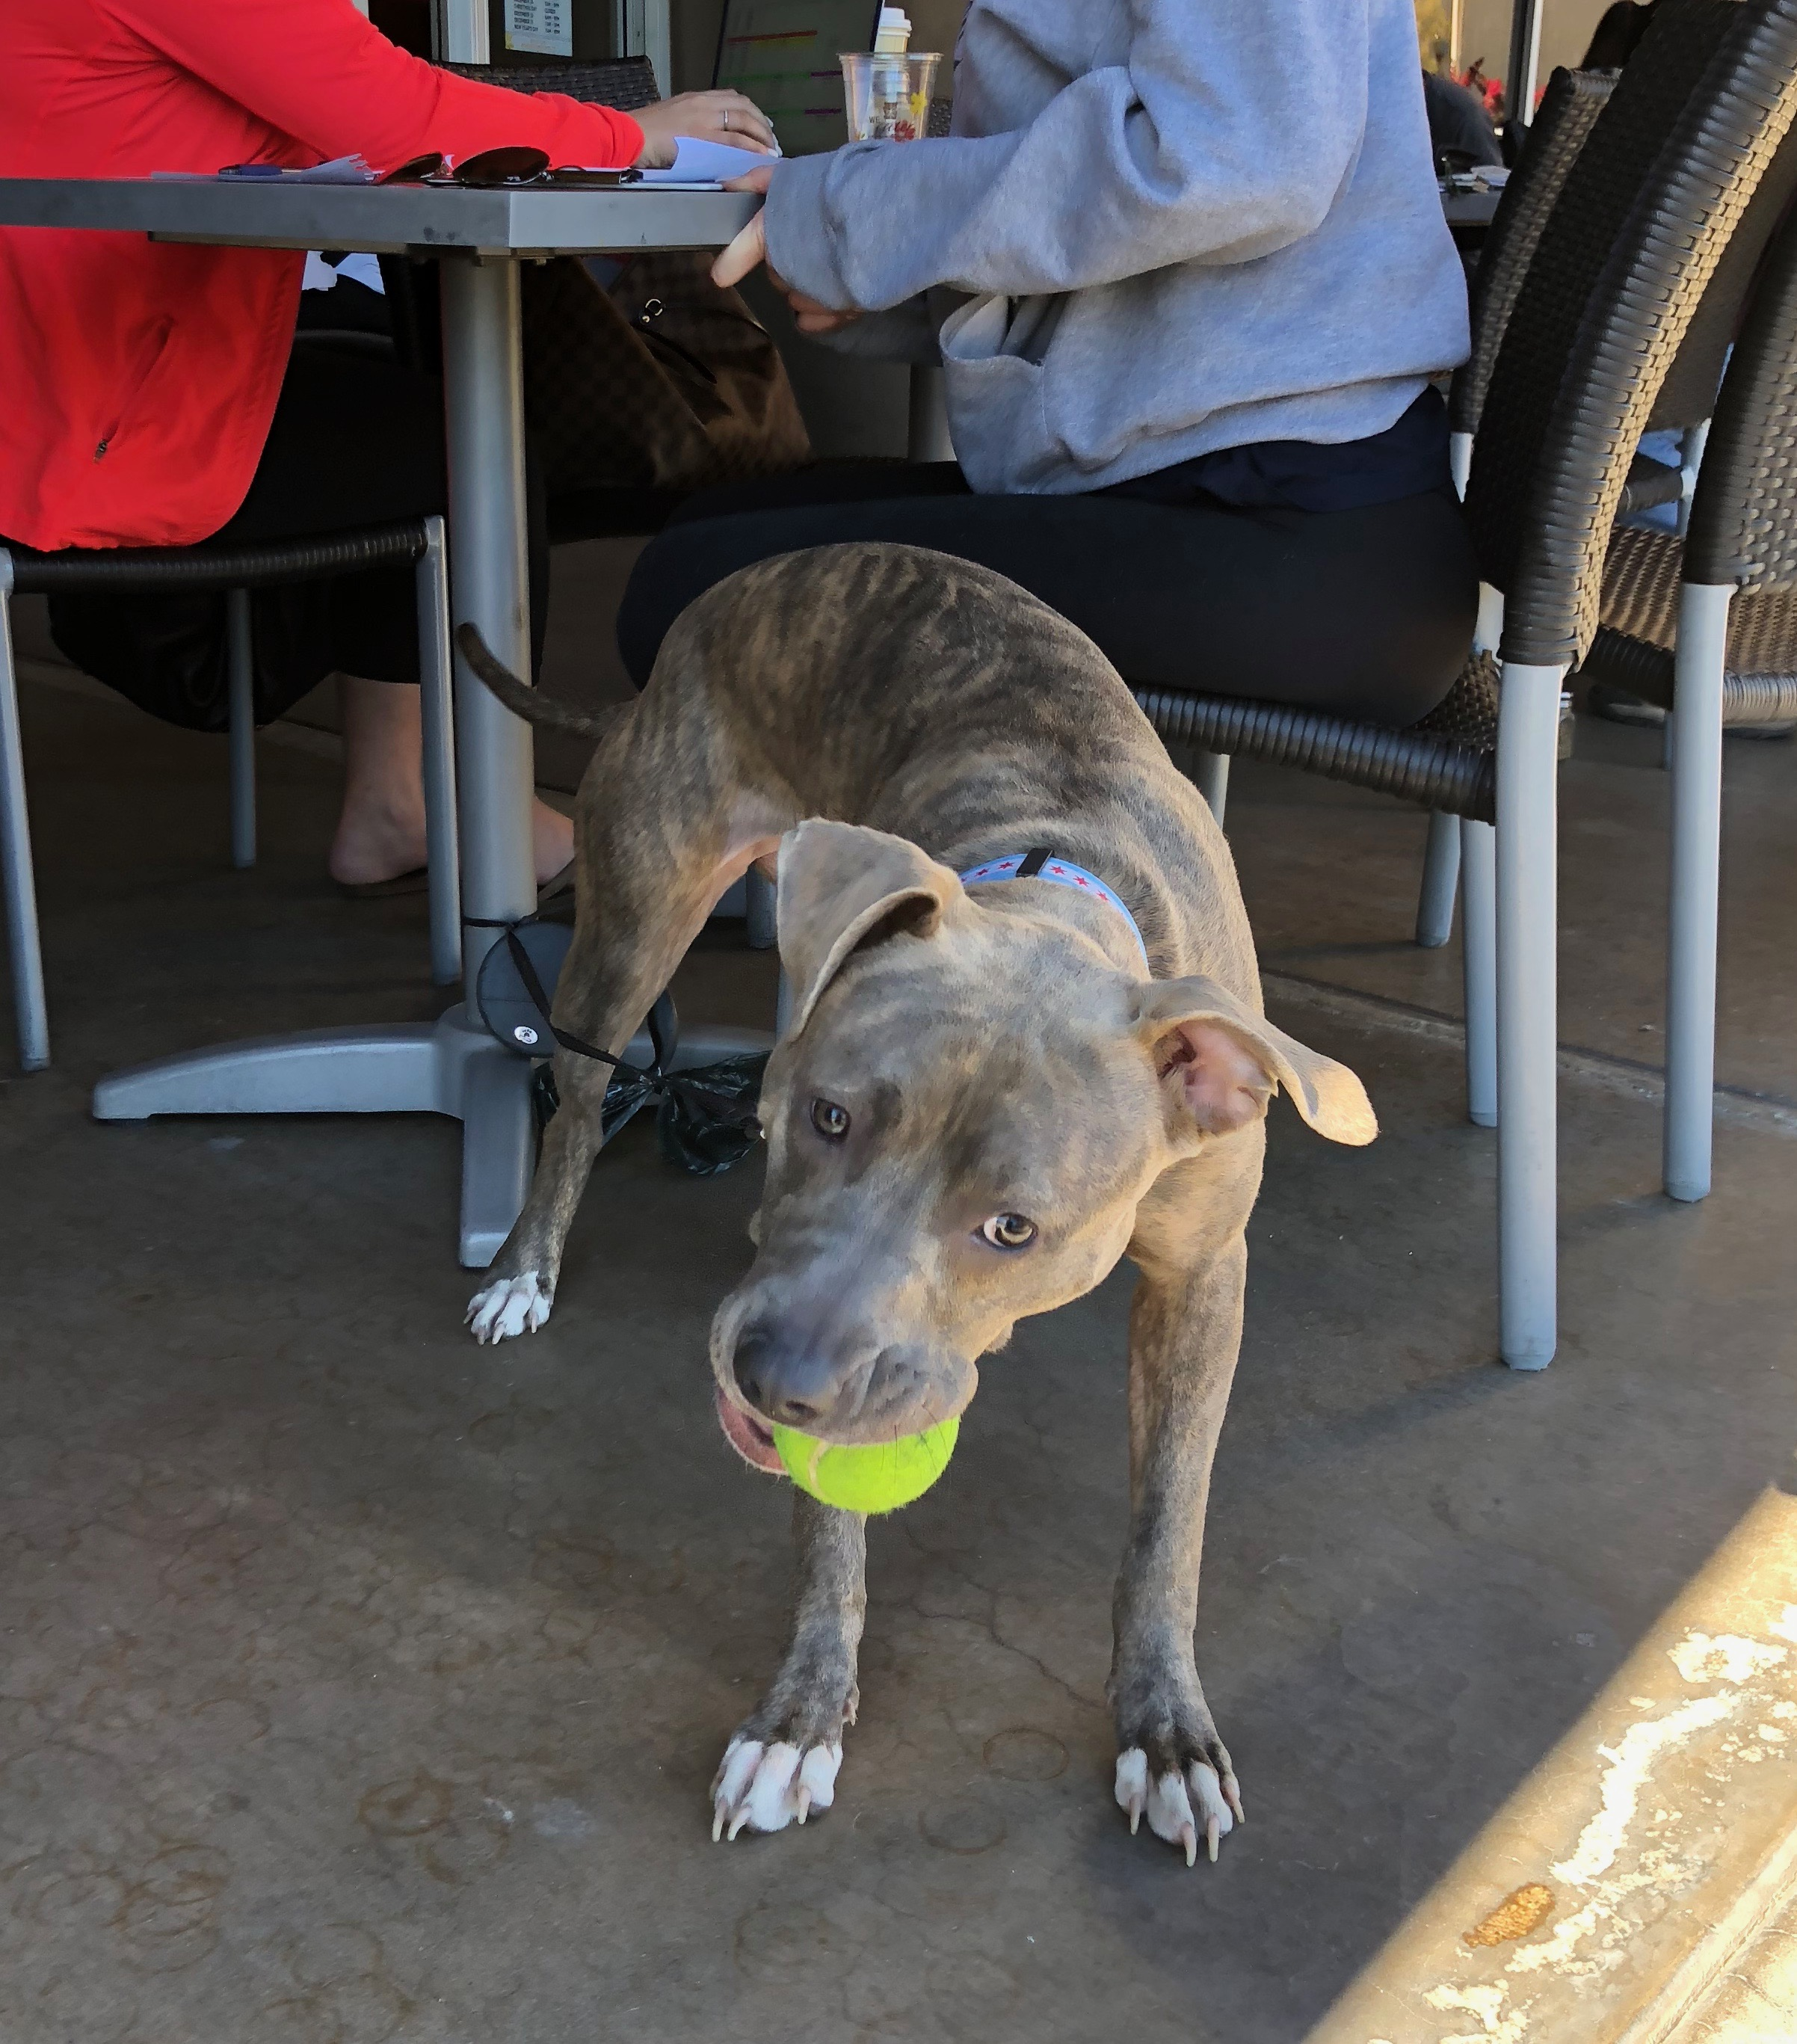 Brindled Pit Bull Puppy Playing With A Tennis Ball